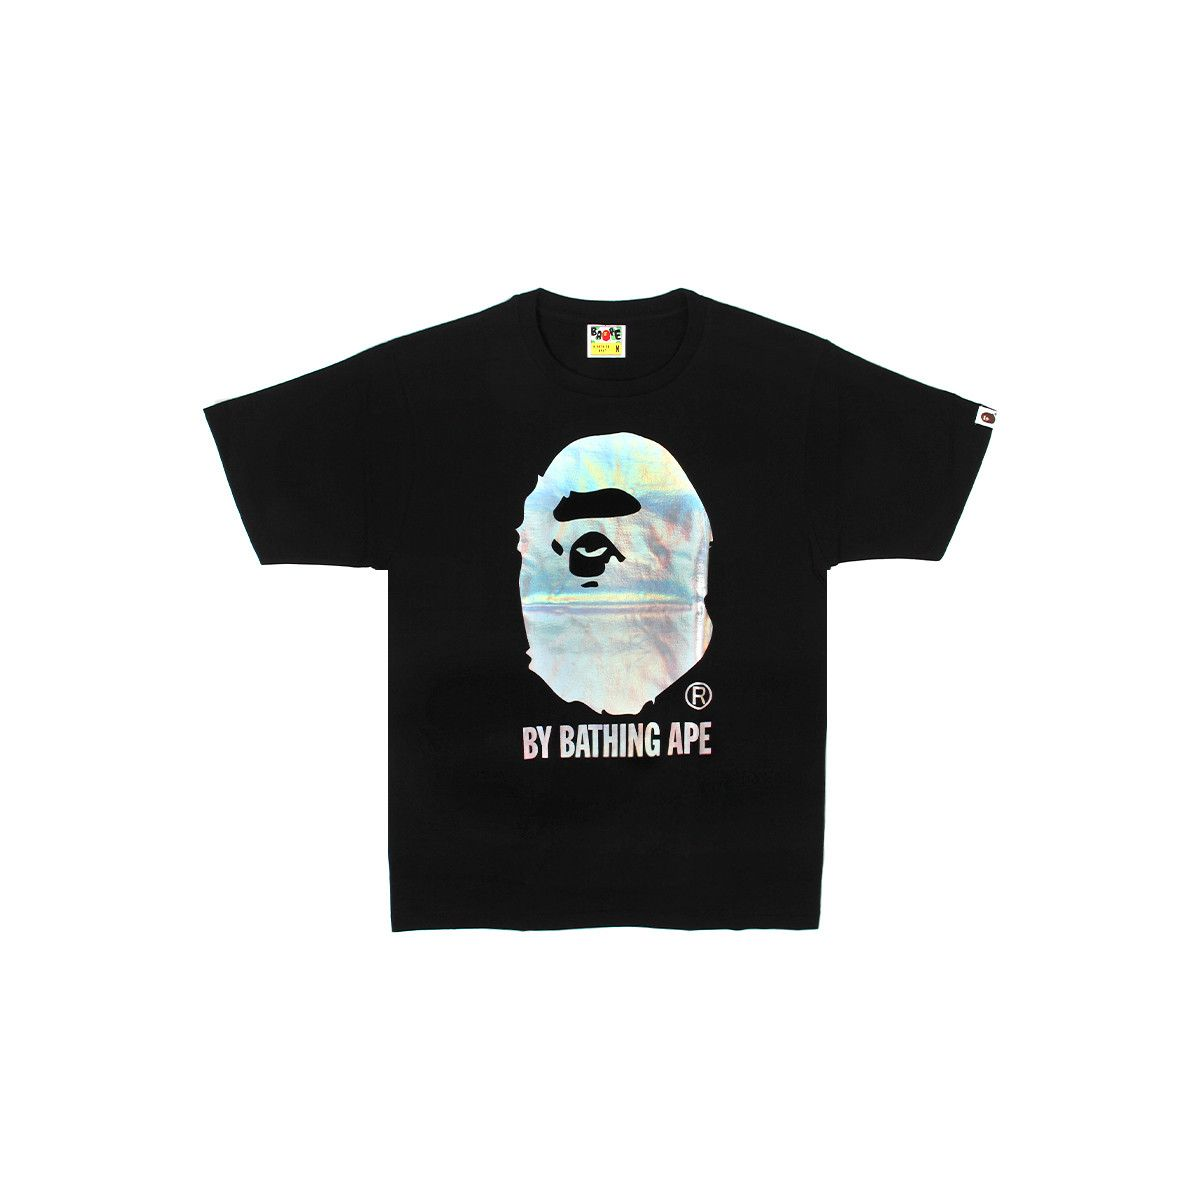 94b1ed59b Concepts International | A Bathing Ape Hologram By Bathing Ape Tee (Black /Silver)